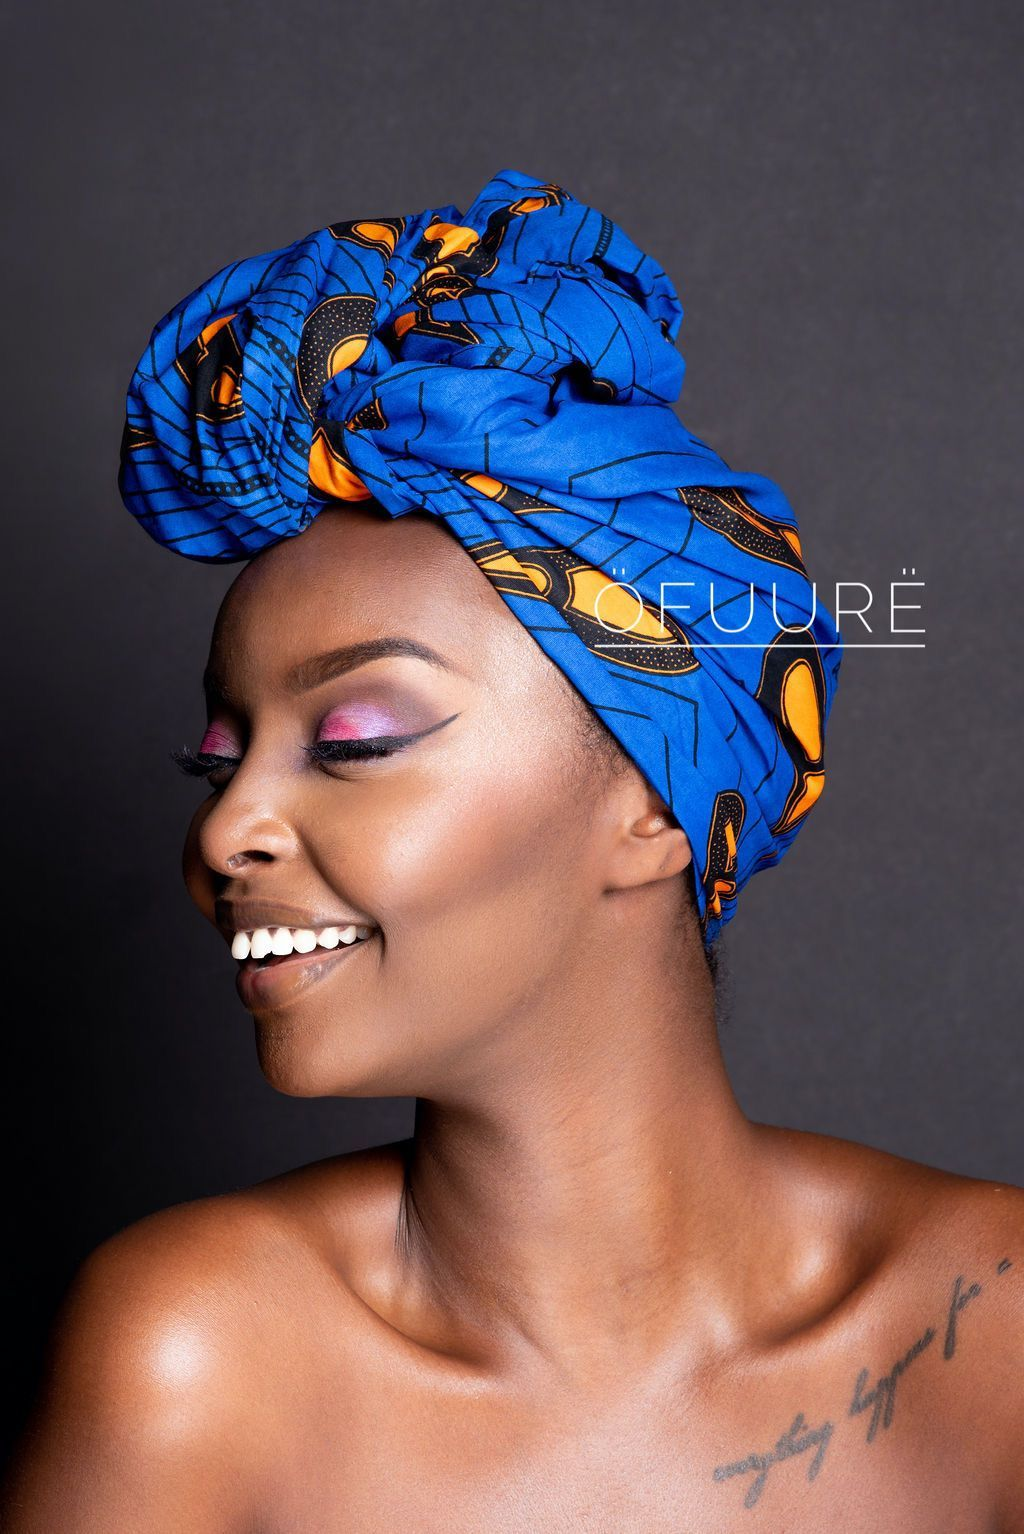 BLUE BULB HEAD WRAP headwrap ofuure